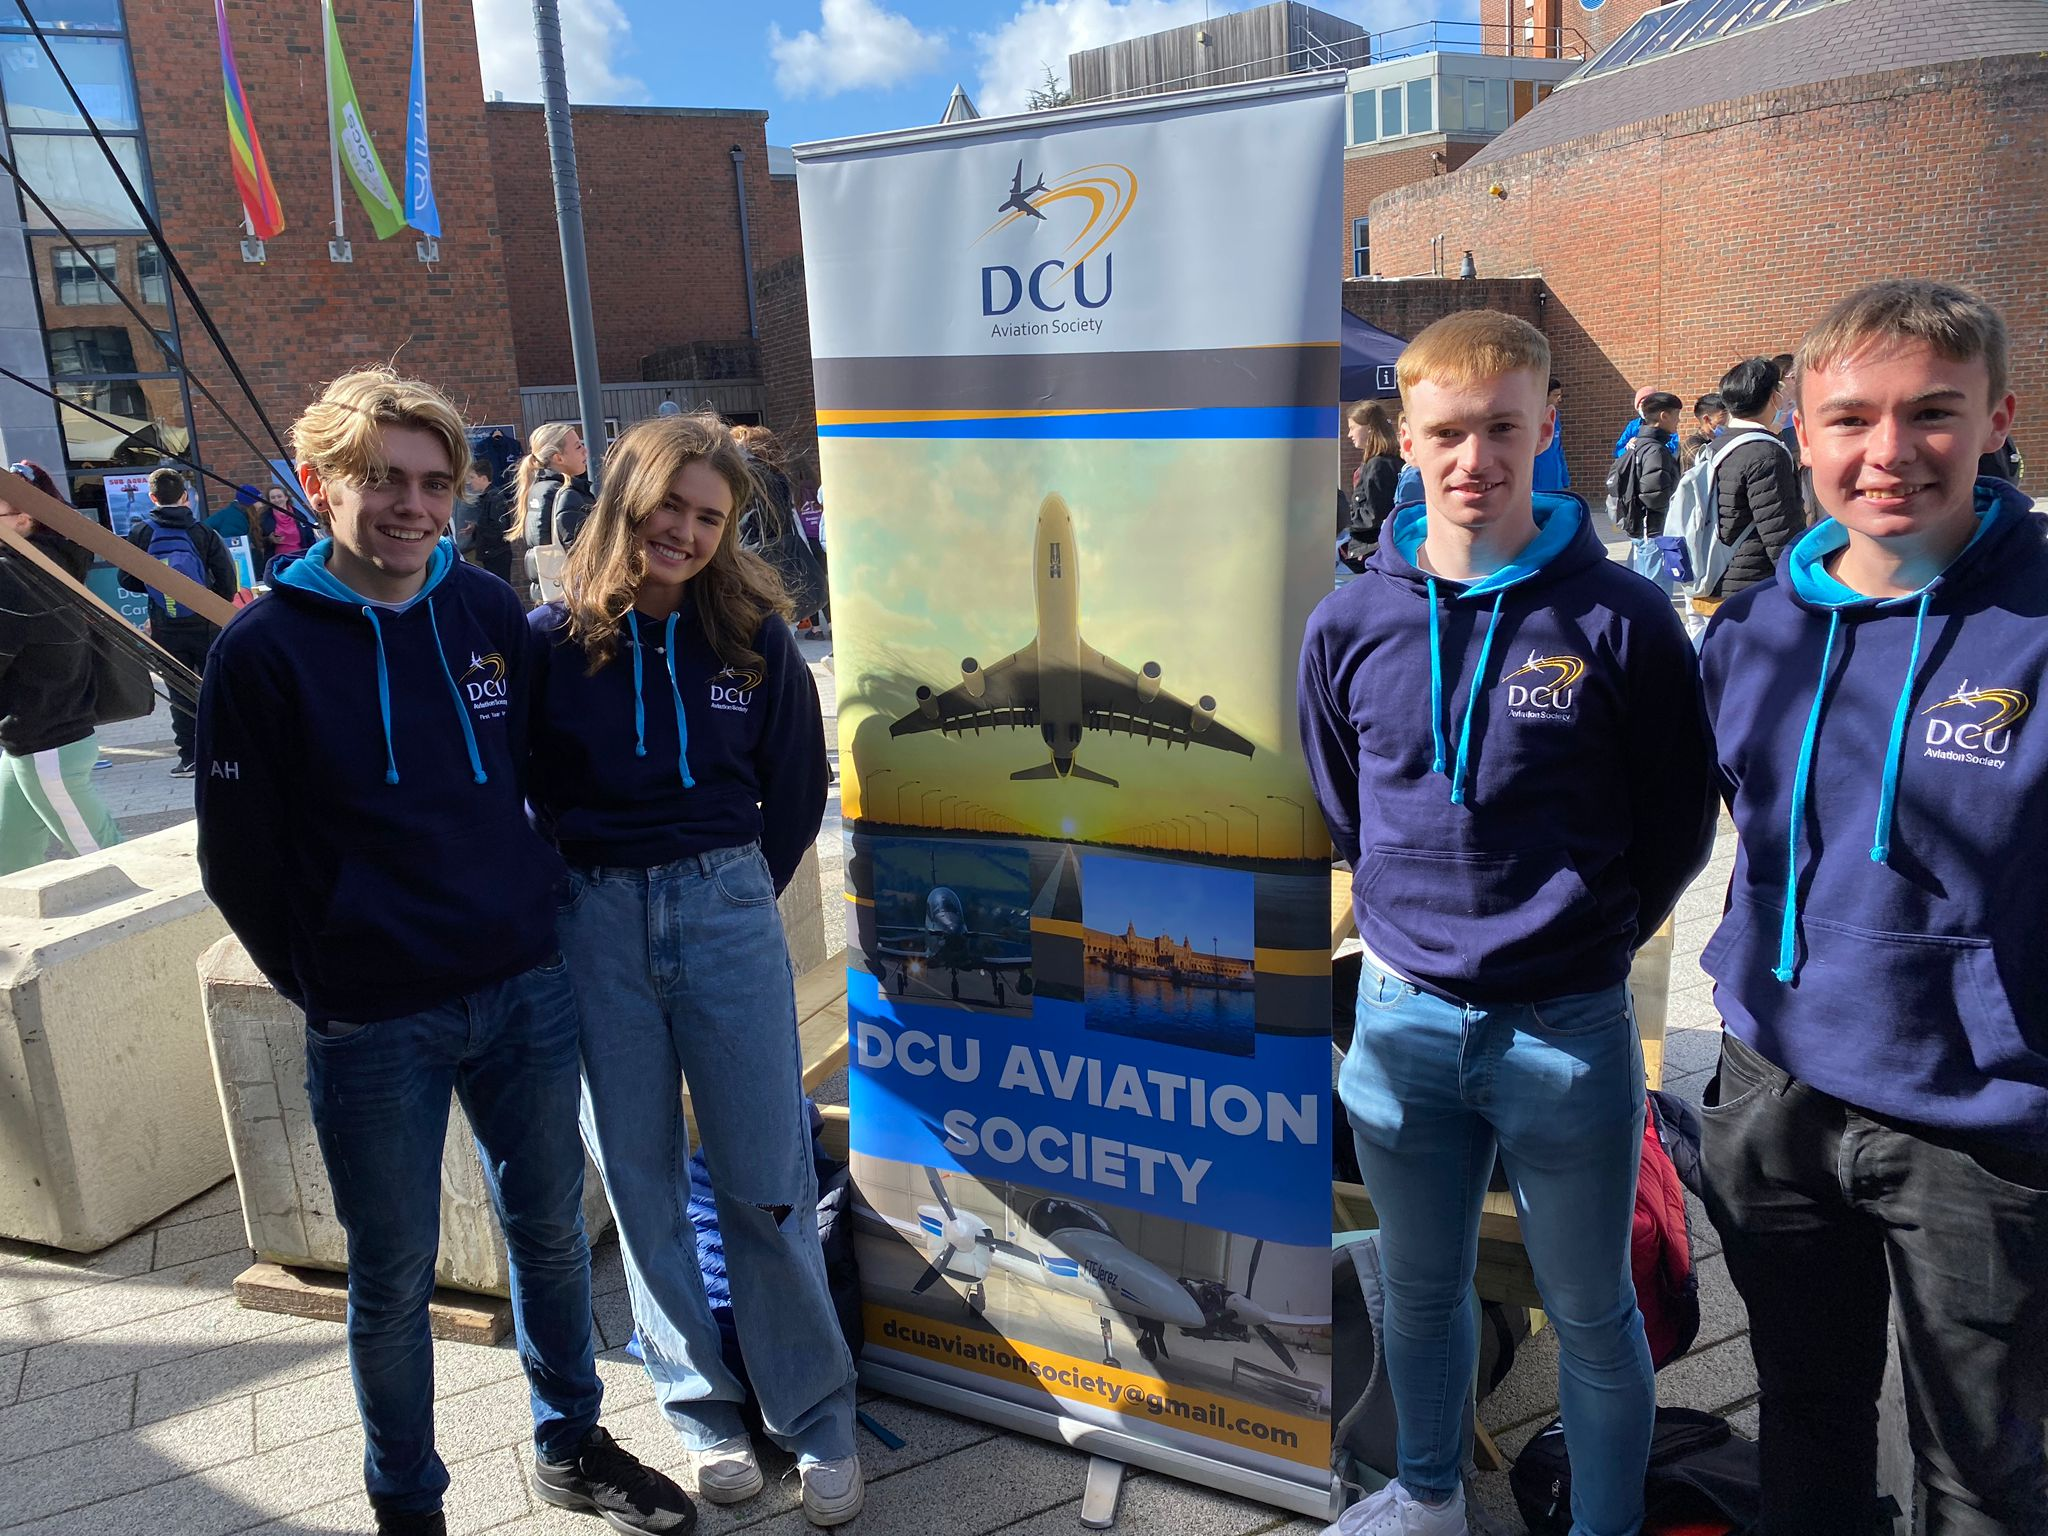 Welcoming All to the Aviation Society!